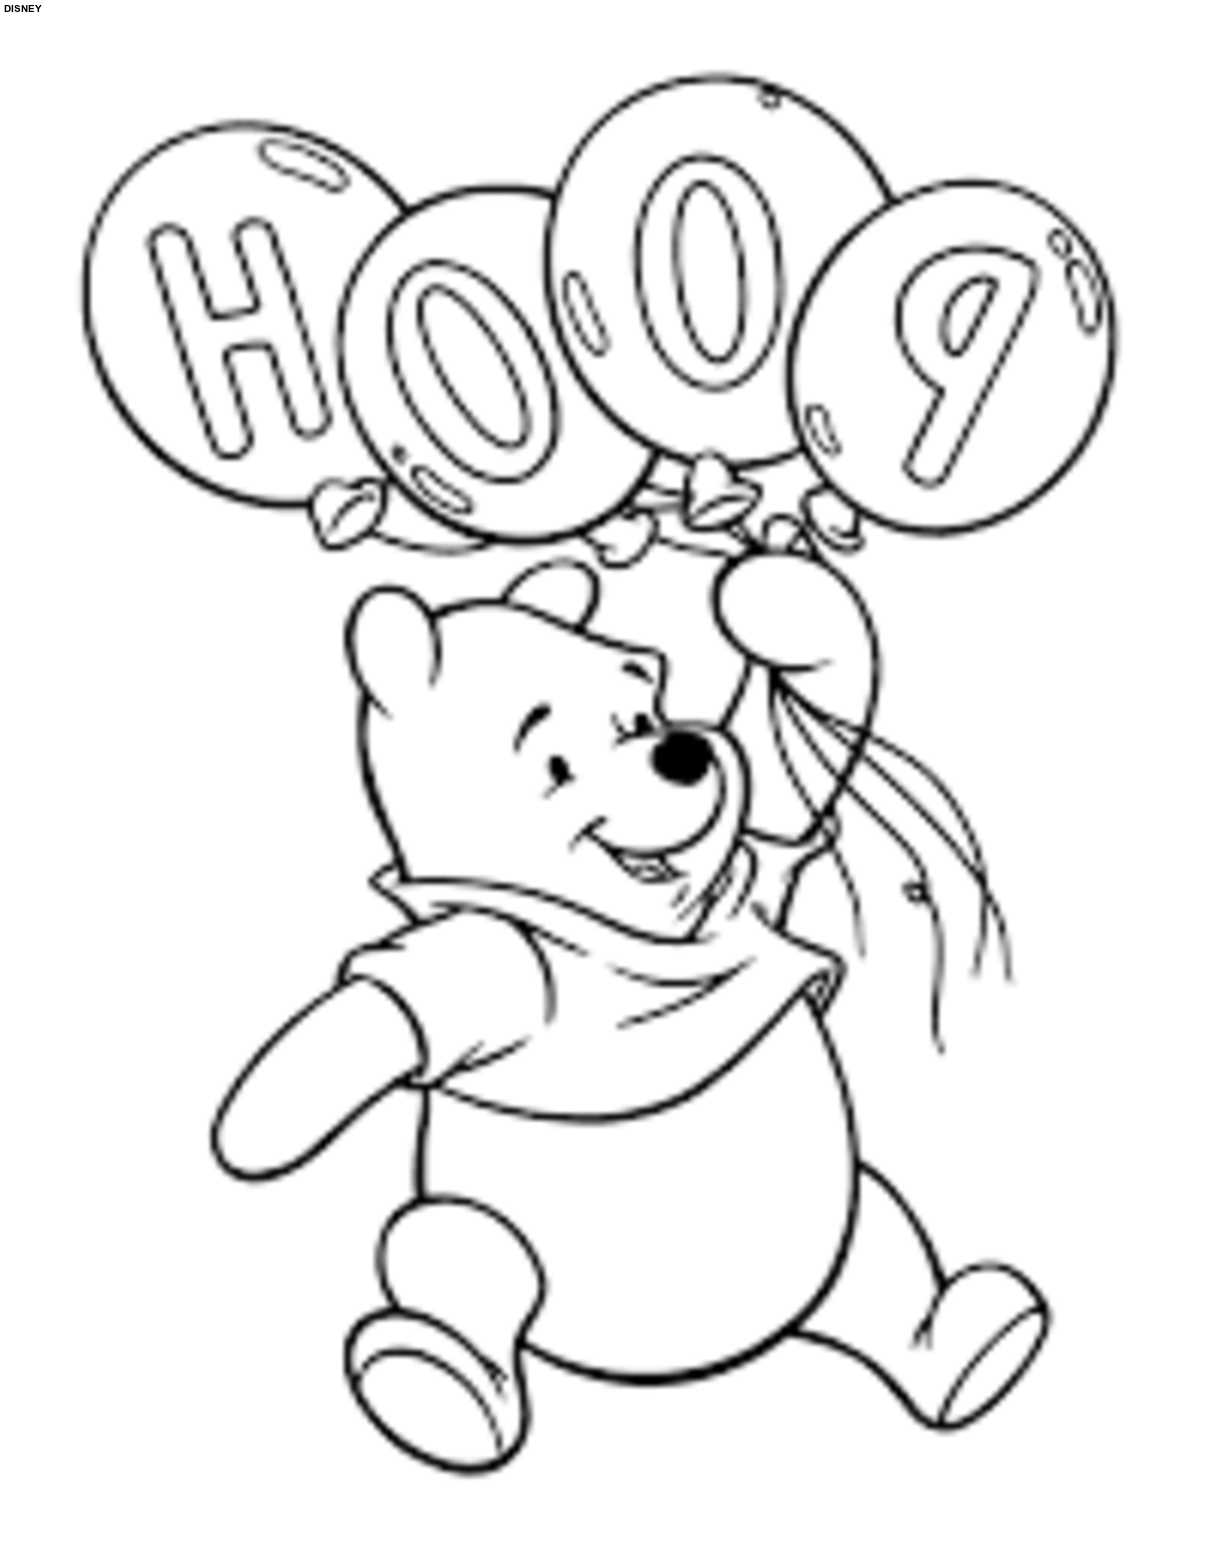 cartoon characters for colouring childrens disney coloring pages download and print for free cartoon characters colouring for